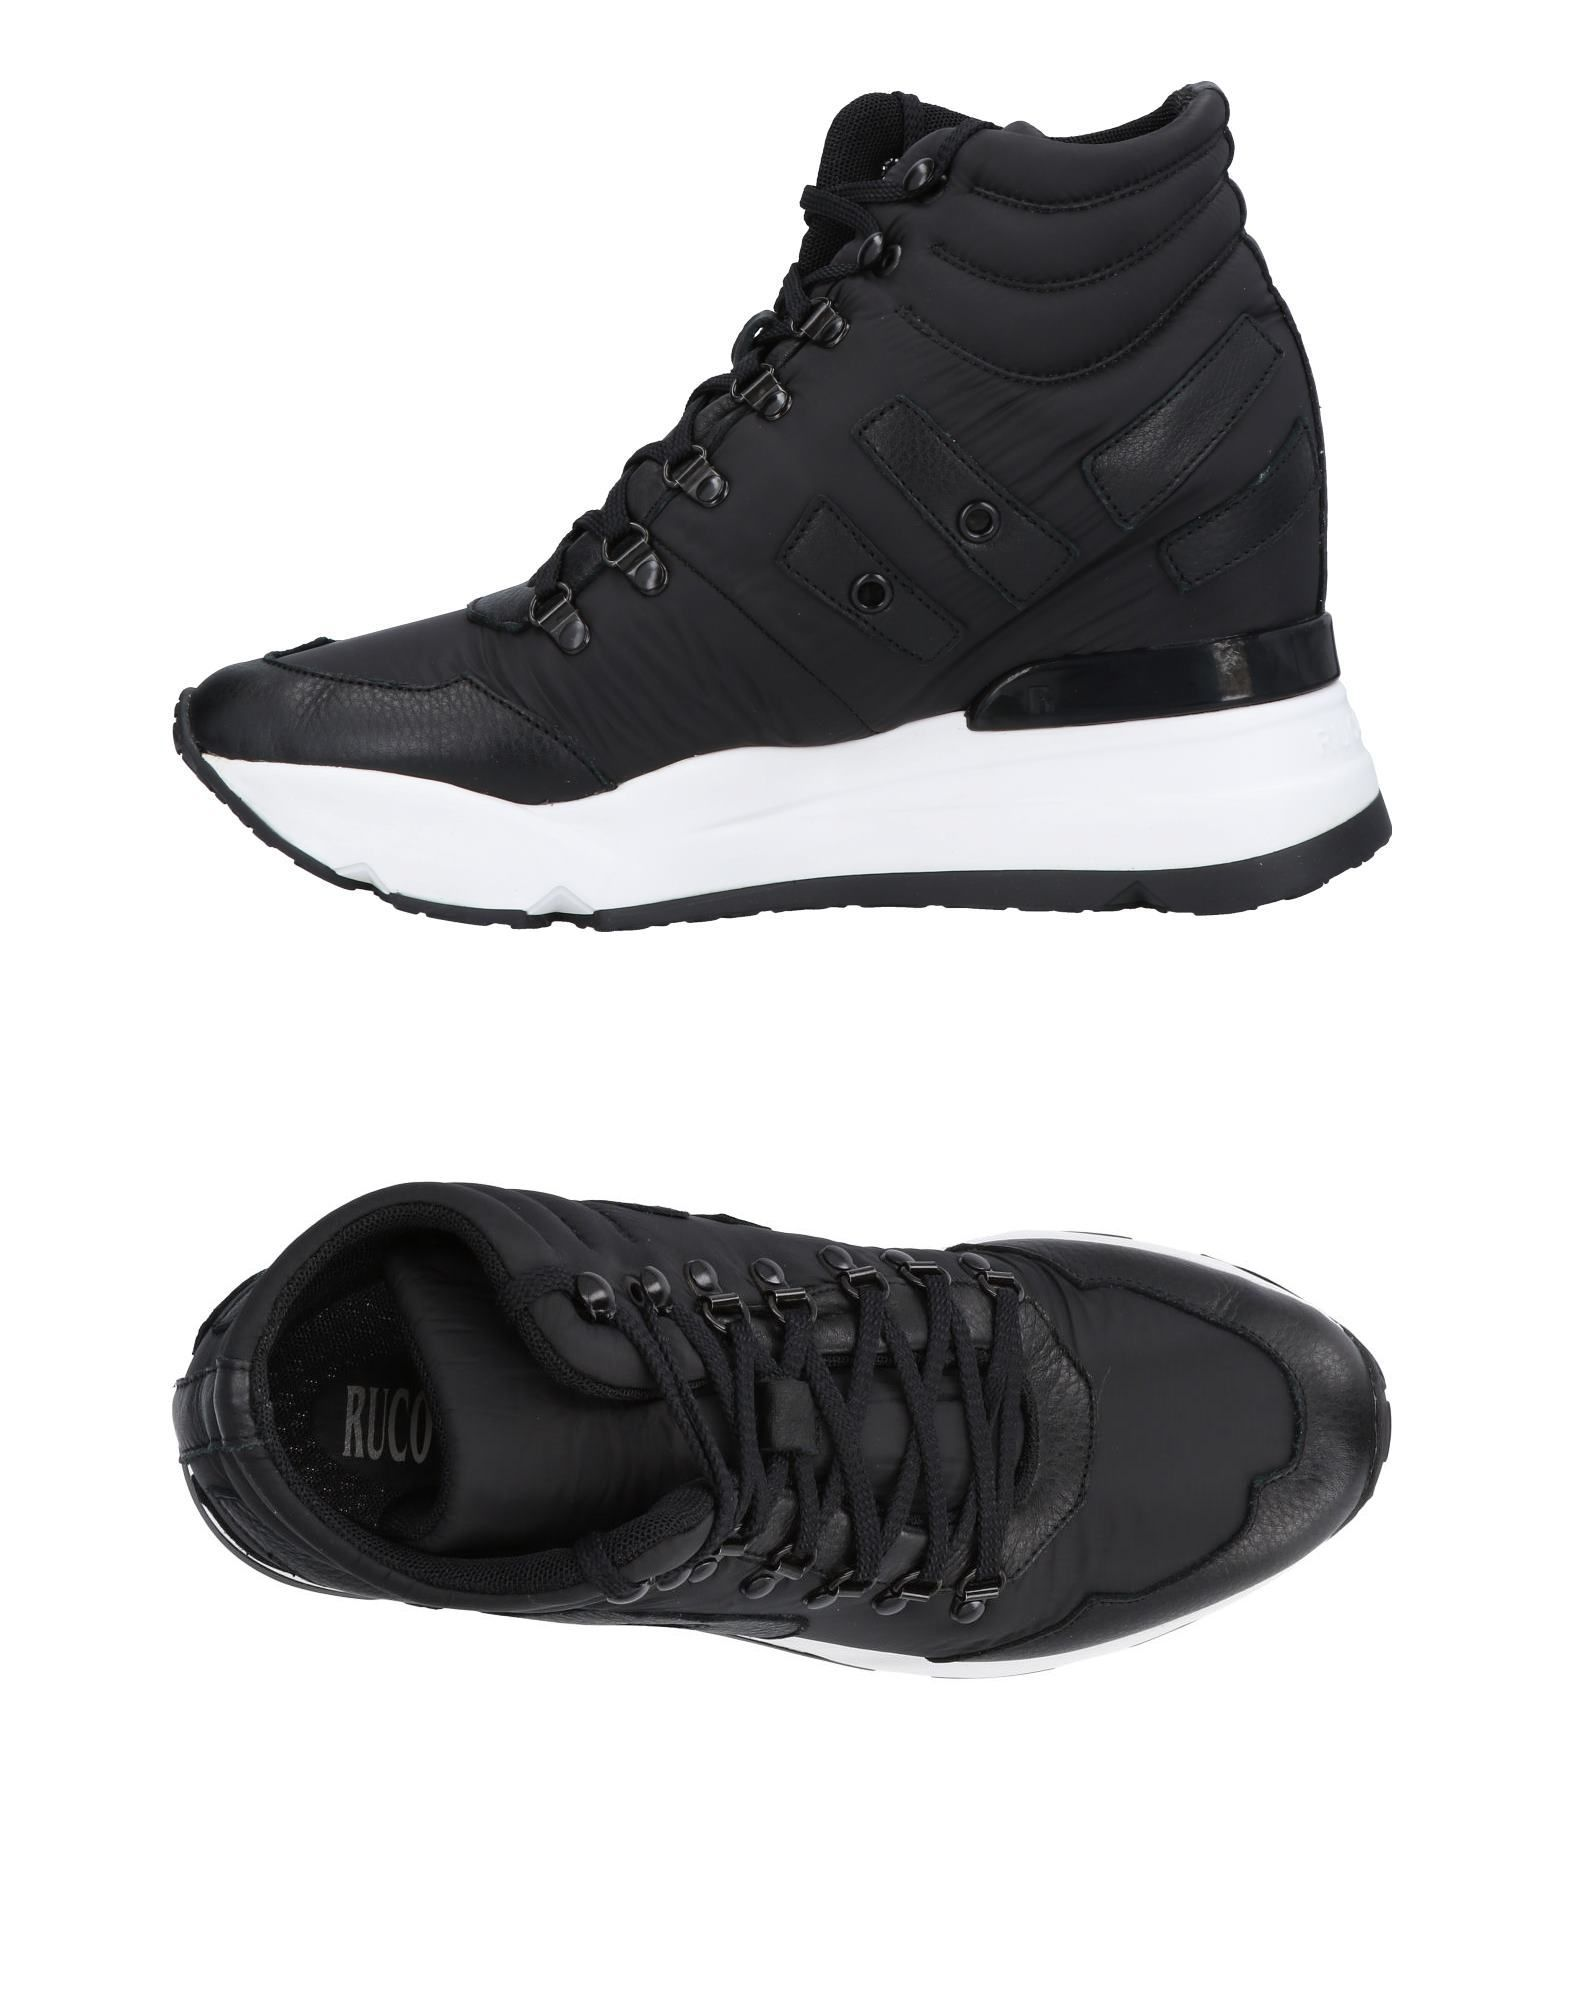 Ruco Line Line Line Sneakers - Women Ruco Line Sneakers online on  Canada - 11469367BT 3f9d6e